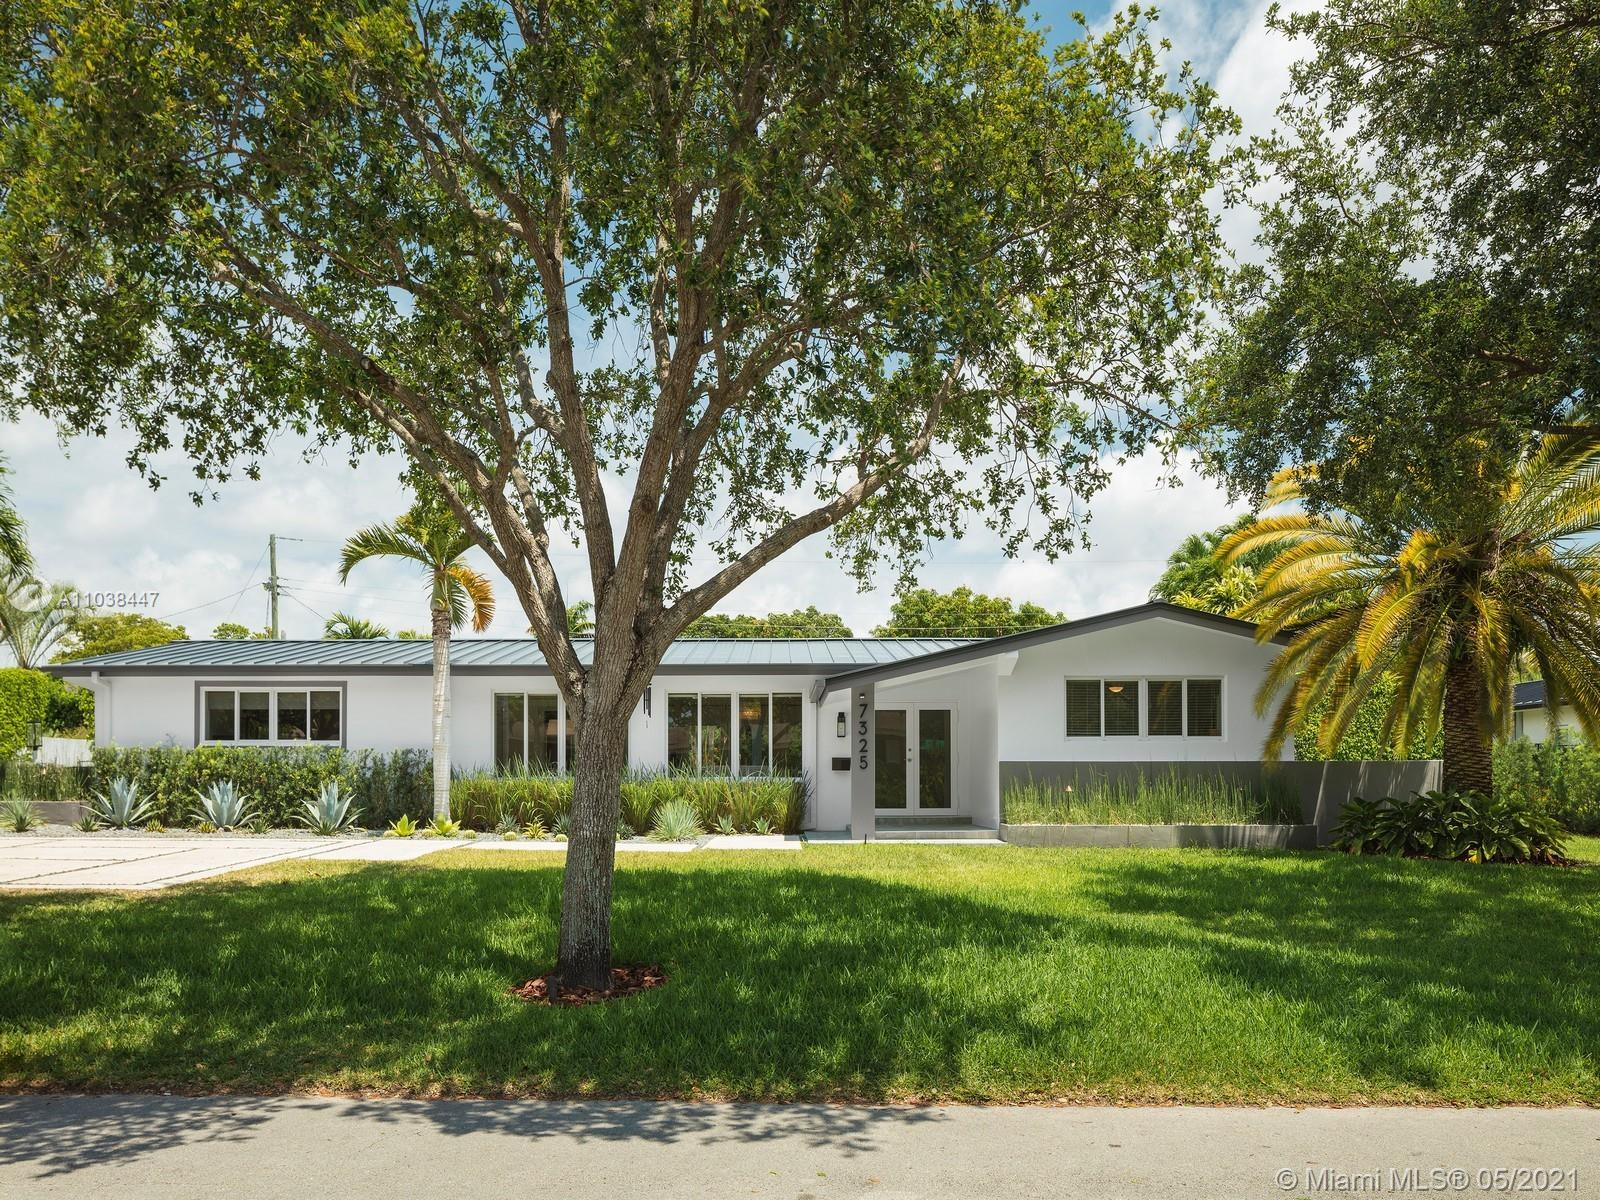 Completely re-modeled one-story home in sought after Pinecrest. This lovely 3-bedroom, 2-bathroom ho